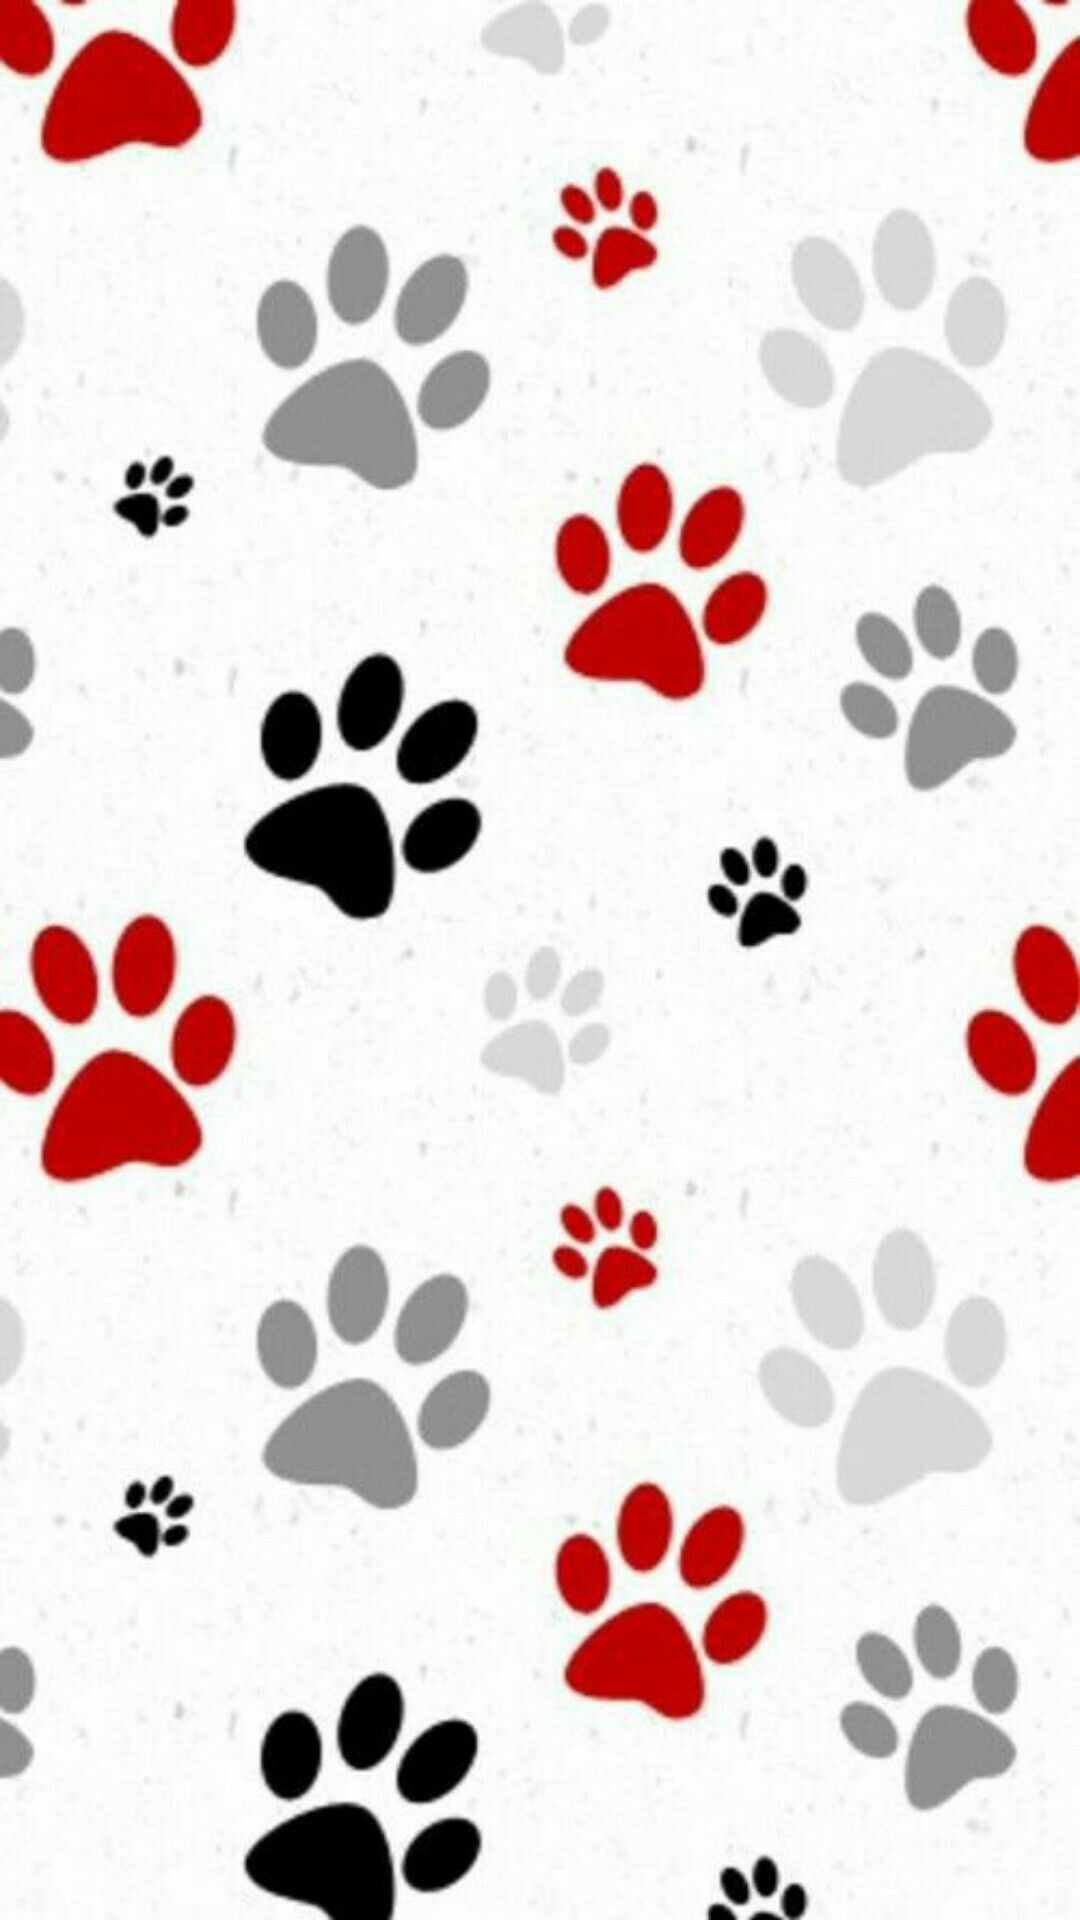 Pin By Hendie Purwiliarto On Phone Backgrounds 23 Paw Print Background Paw Wallpaper Dog Wallpaper